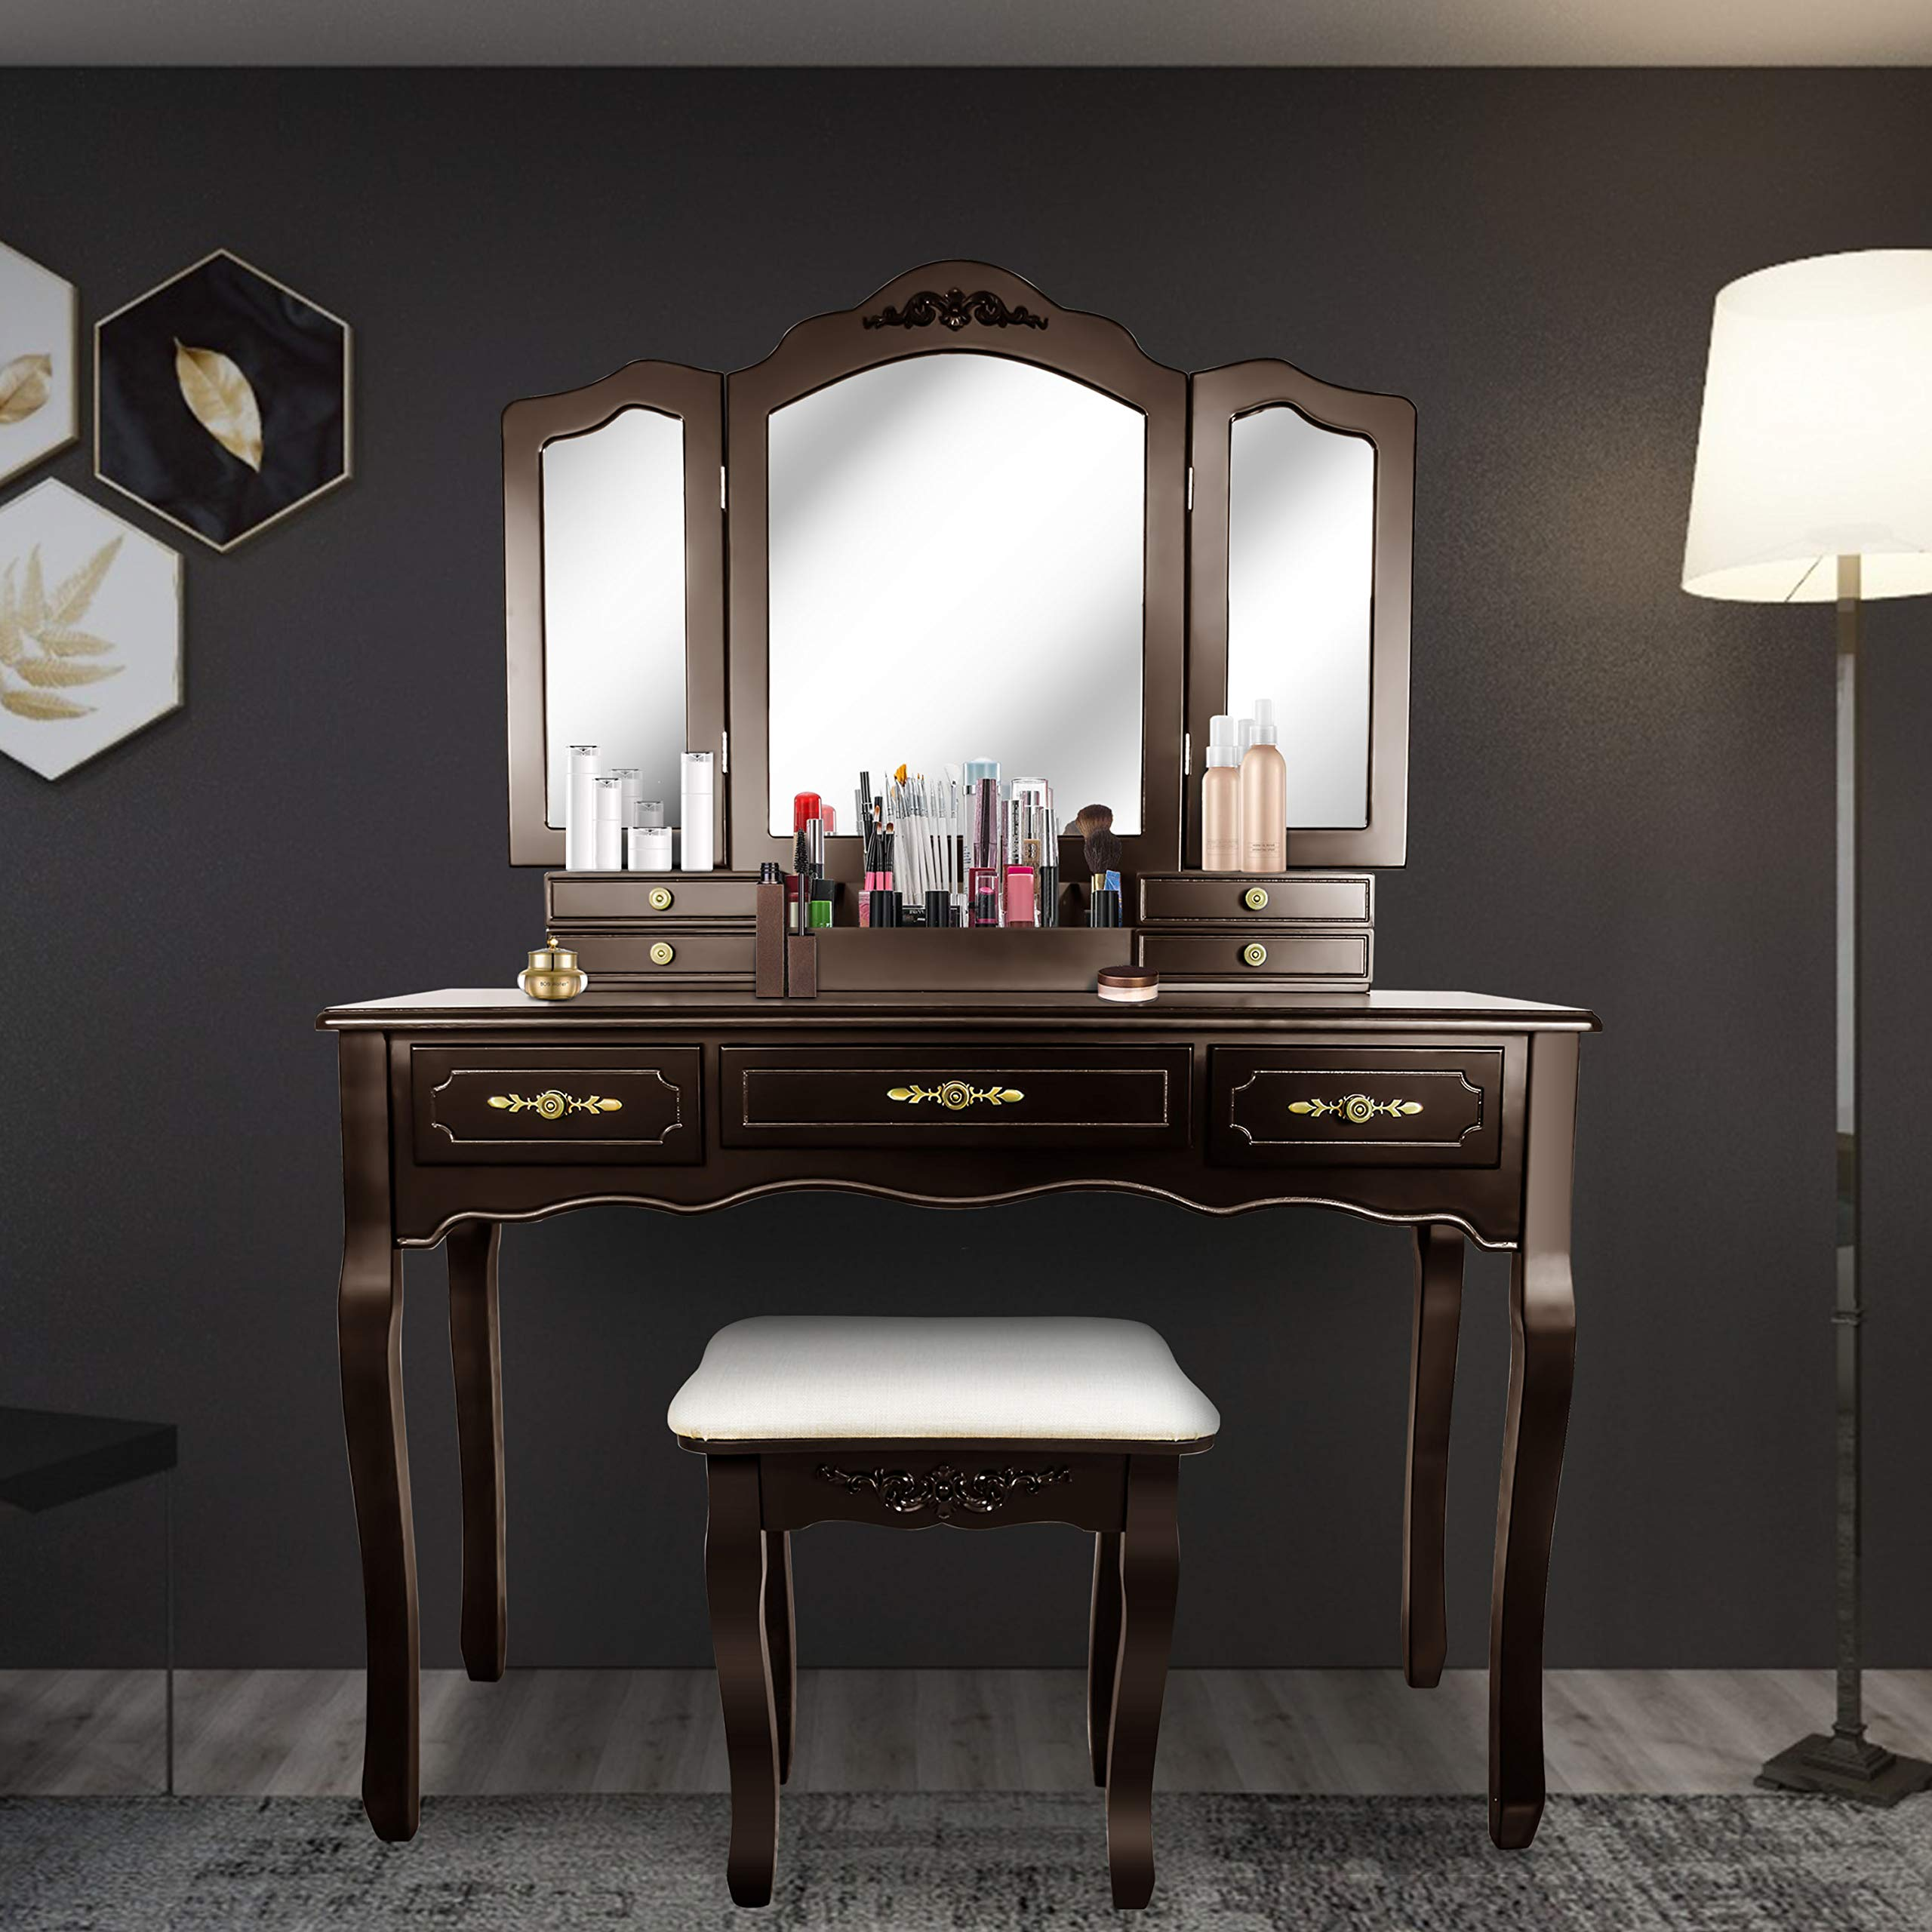 SCYL Color Your Life Tri Folding Mirror Vanity Table Set Dressing Table with Cushioned Stool& 7 Storage Drawer Wood Furniture (Espresso)